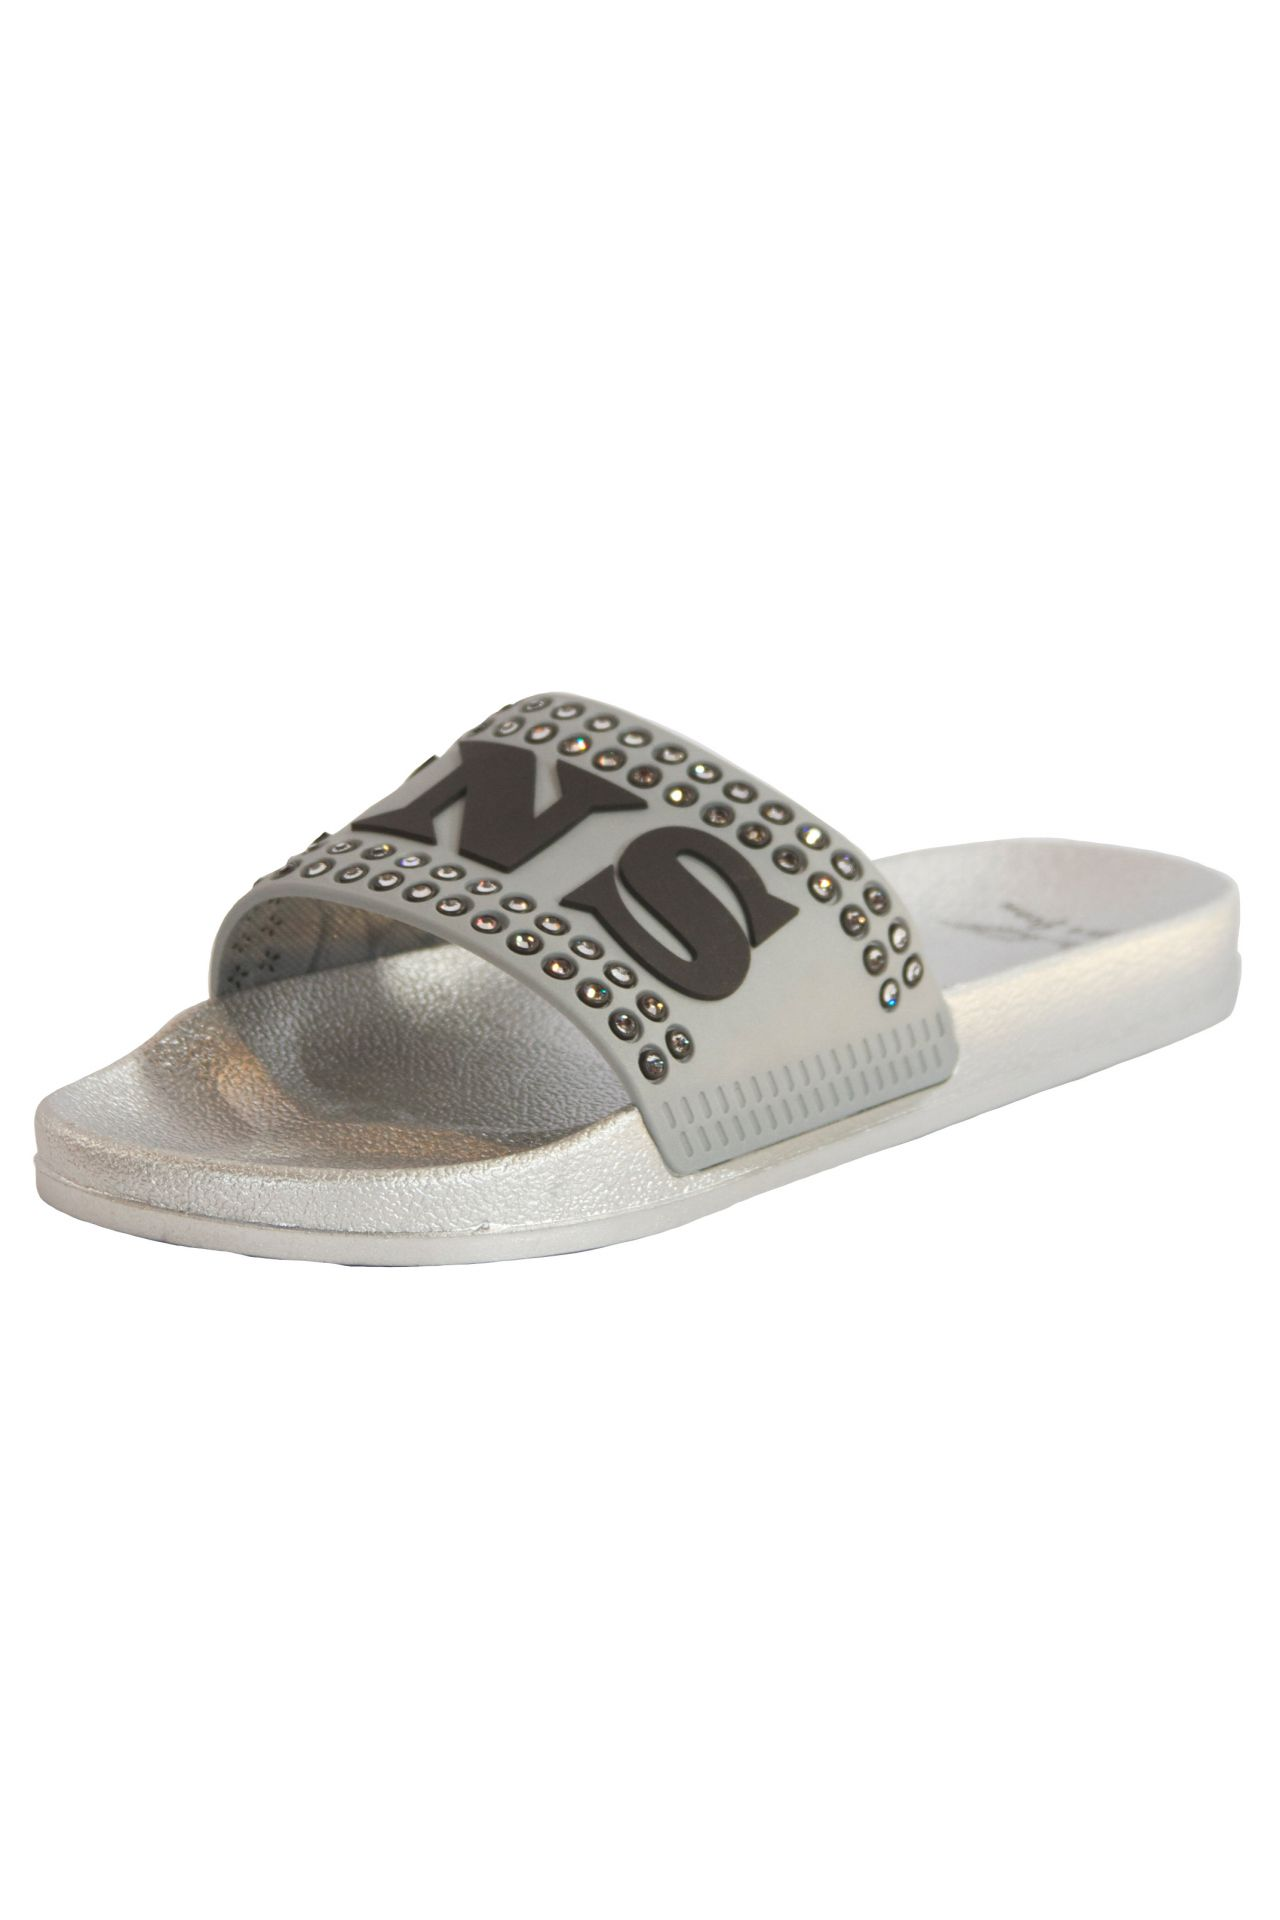 ROBIN SLIDES IN SILVER WITH SMOKY CRYSTALS